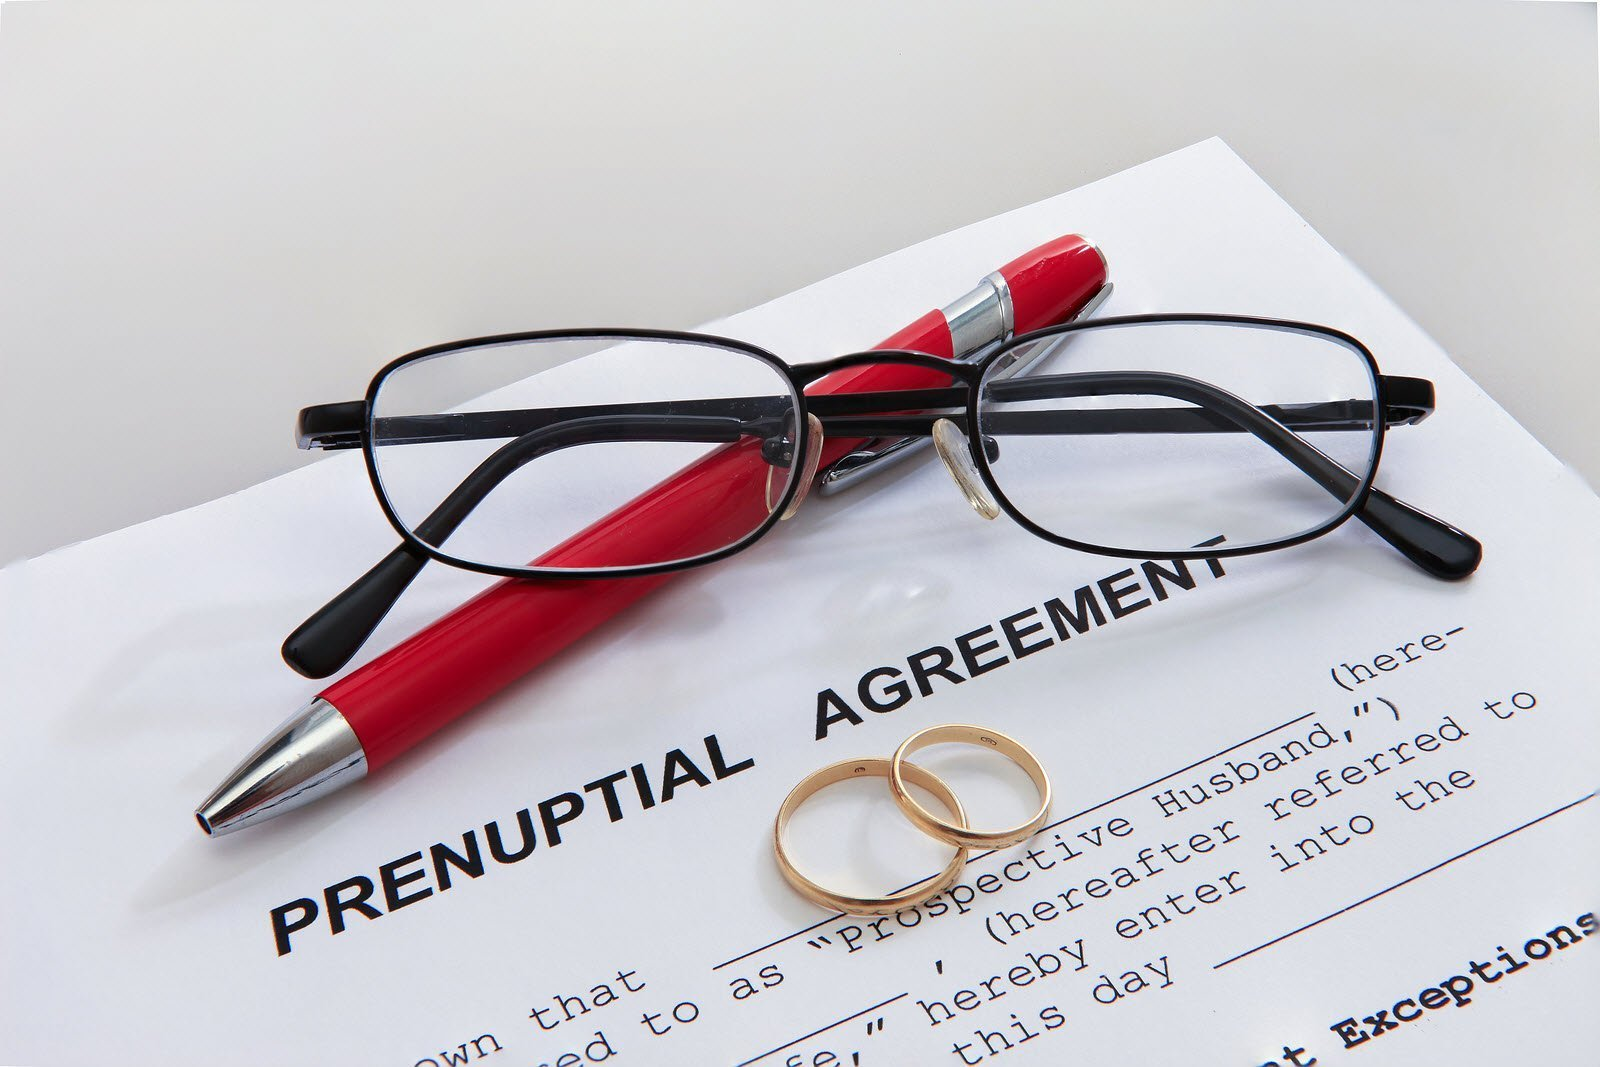 Prenuptial Agreements California Law Attorney Sperling Law Firm